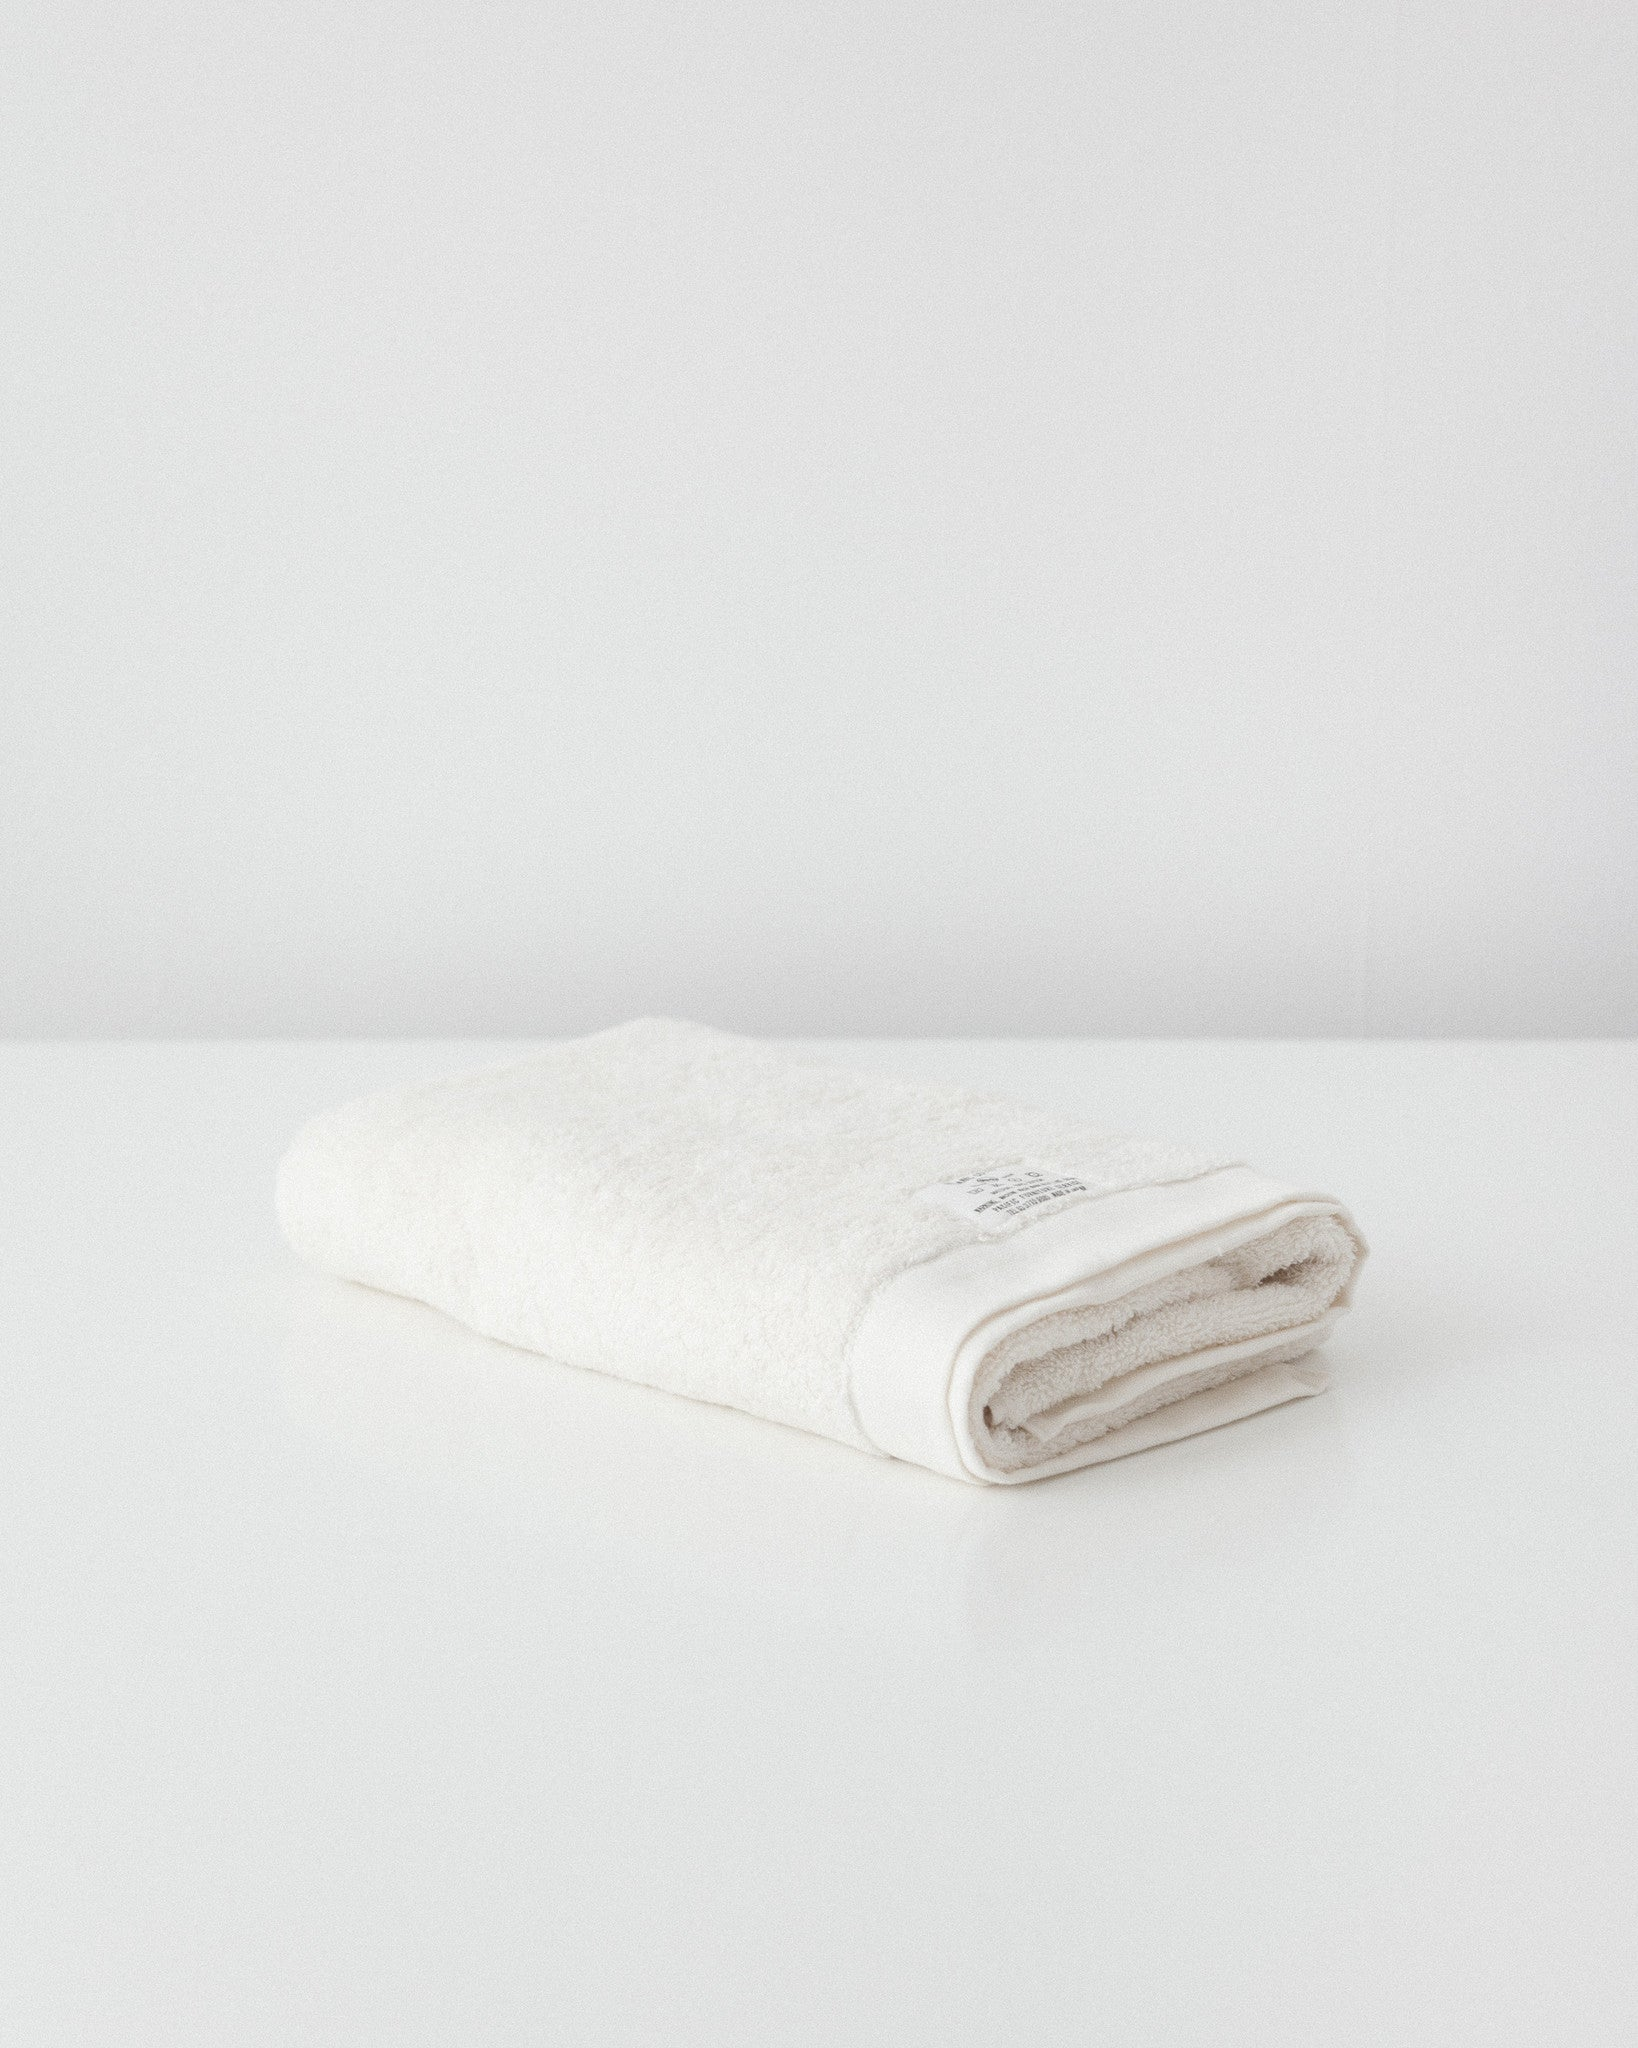 Pacific Furniture Service - Organic Cotton Bath Towel - Vanilla White